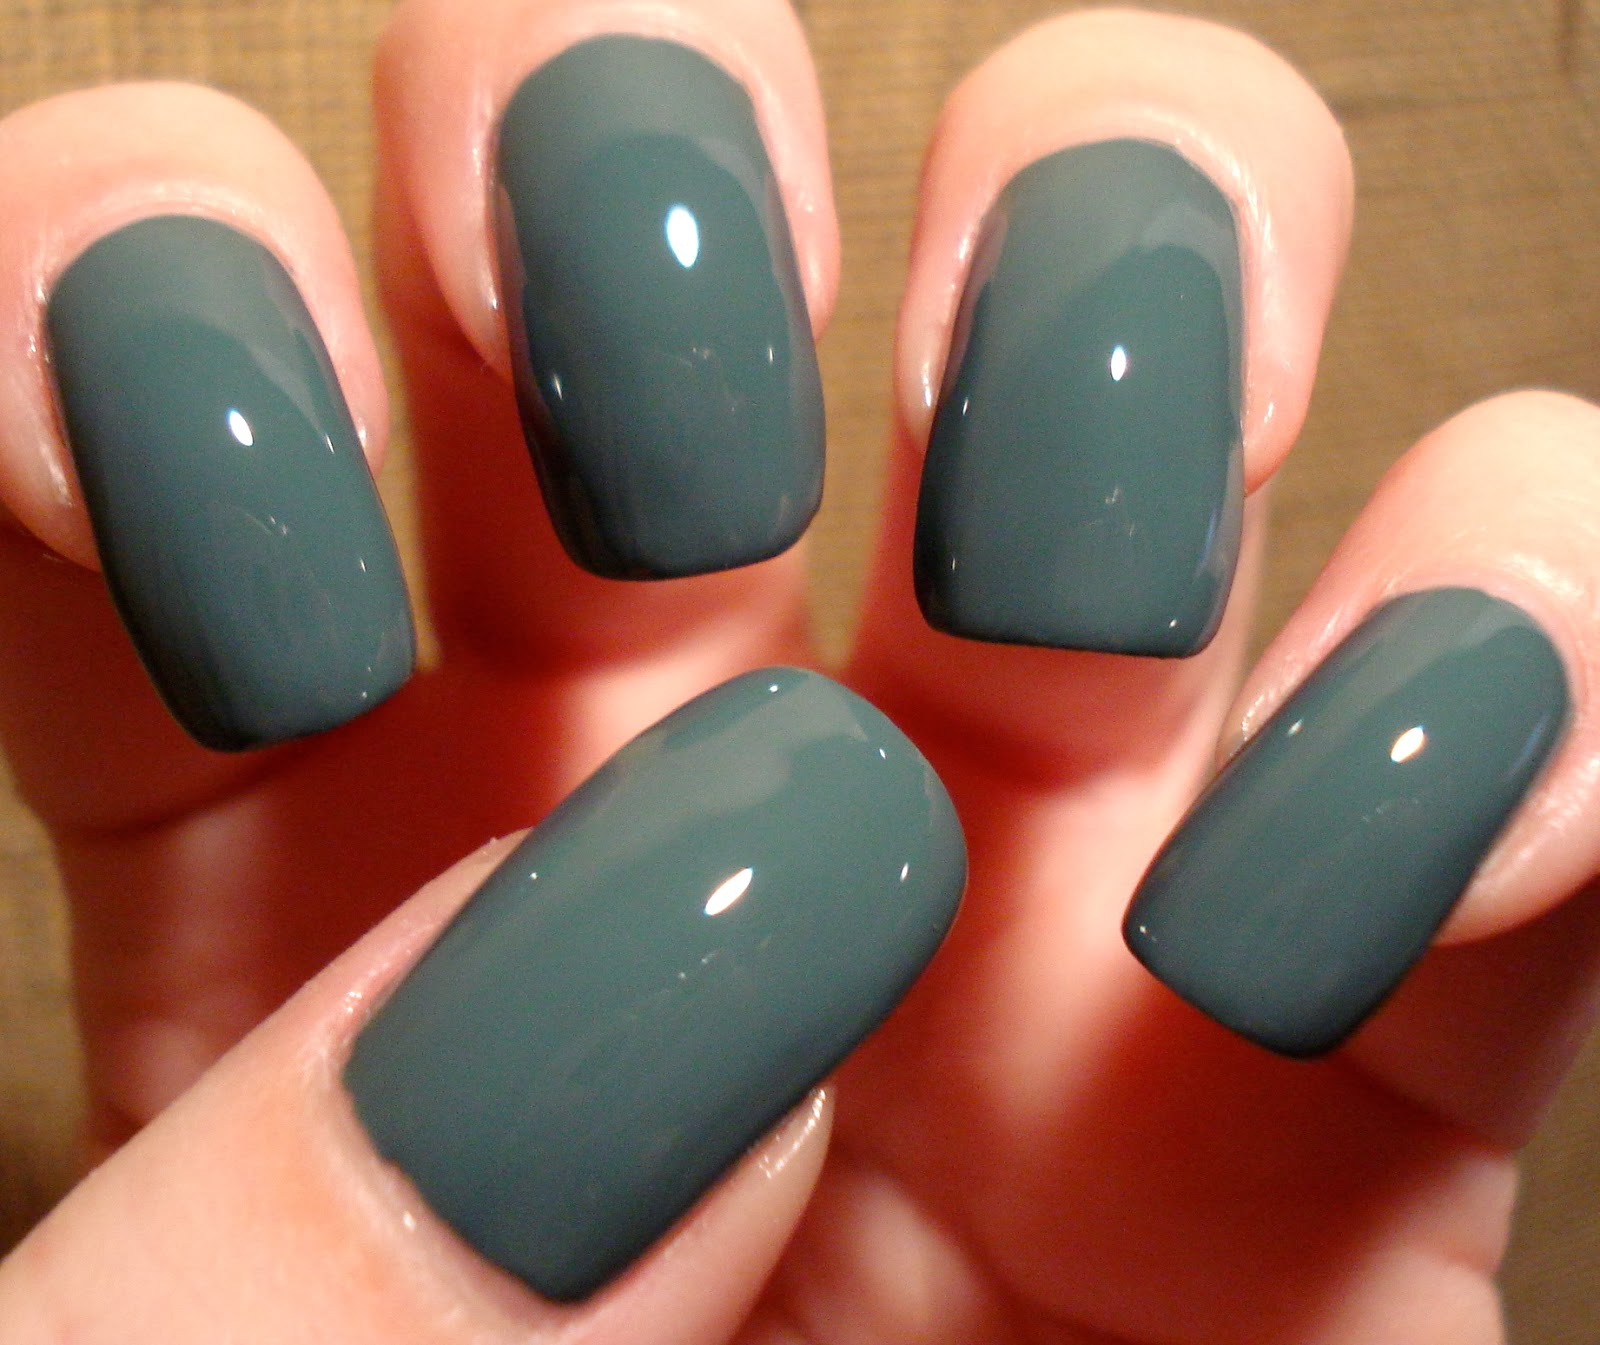 Little Miss Nailpolish: Essie Vested Interest - swatches and review